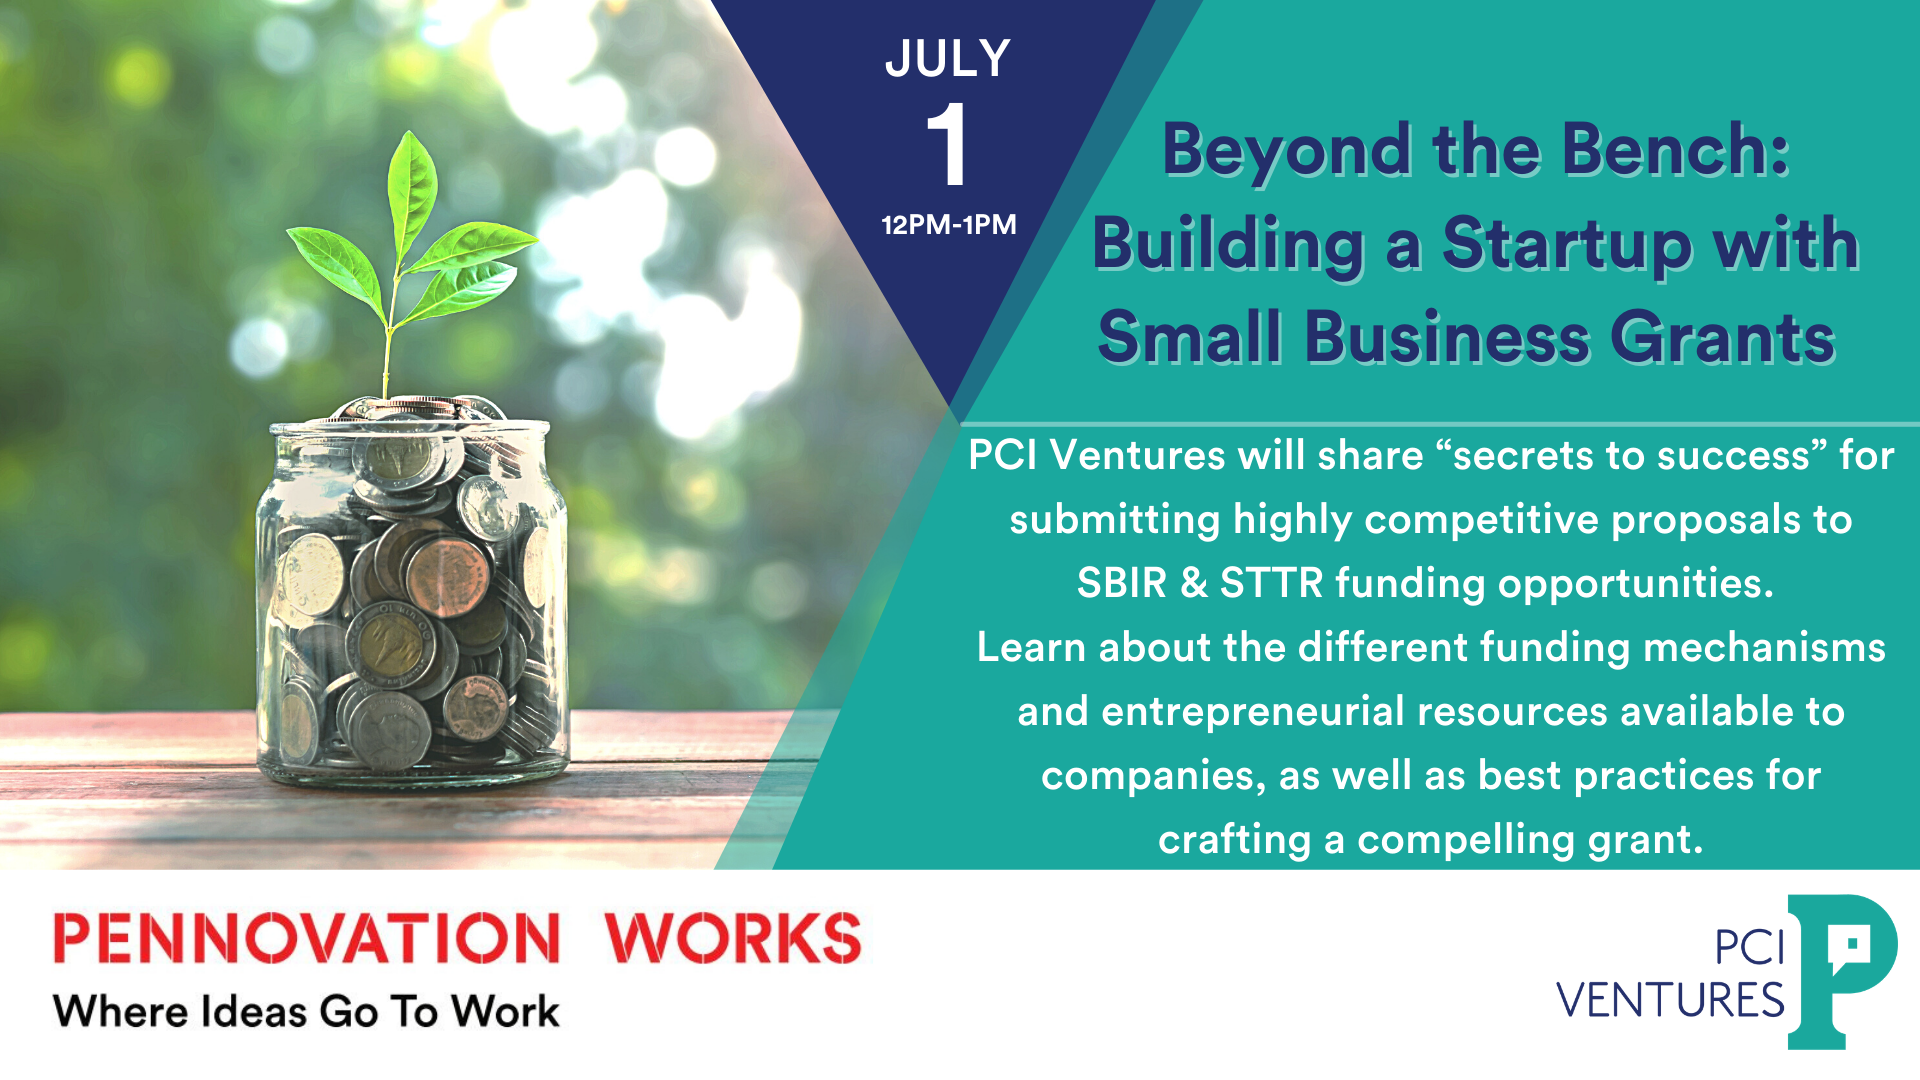 Beyond the Bench: Building a startup with small business grants